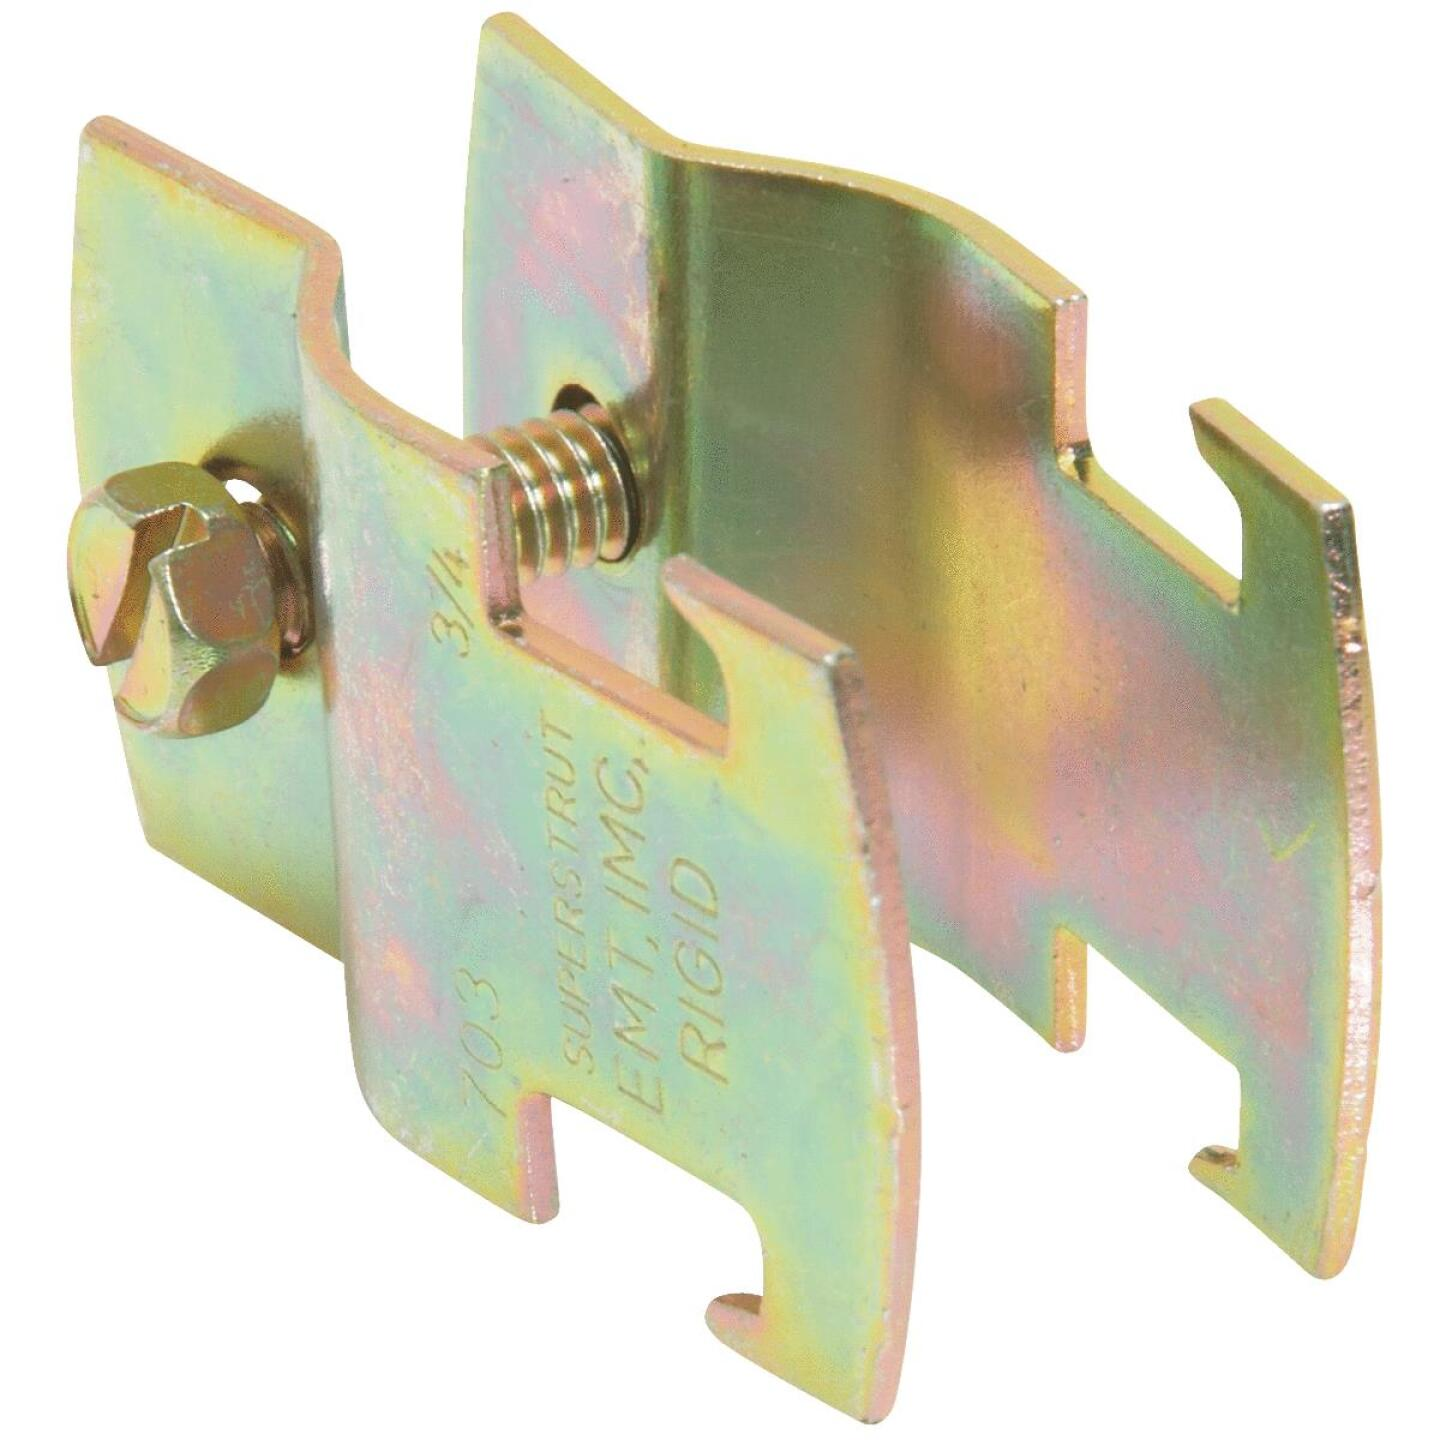 Superstrut 3/4 In. Gold Galvanized Electroplated Zinc Universal Pipe Clamp Image 1